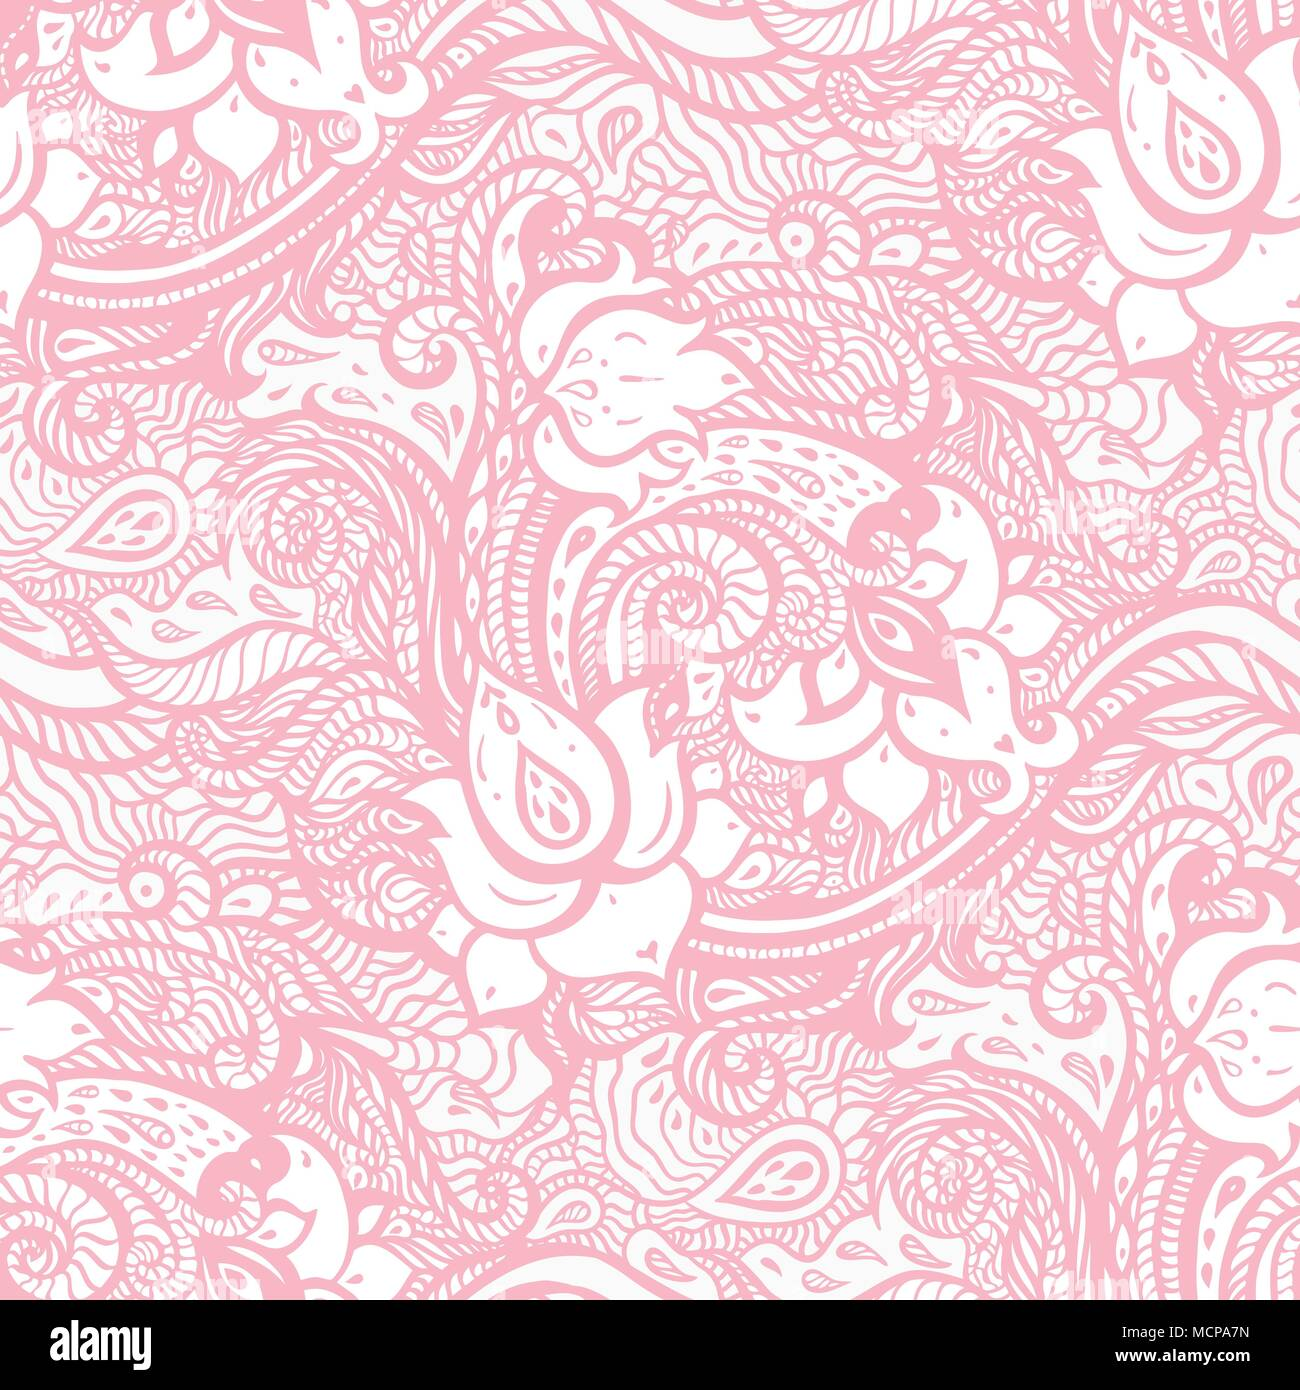 Vintage Floral Pink Background Beautiful Elegant Ethnic Hand